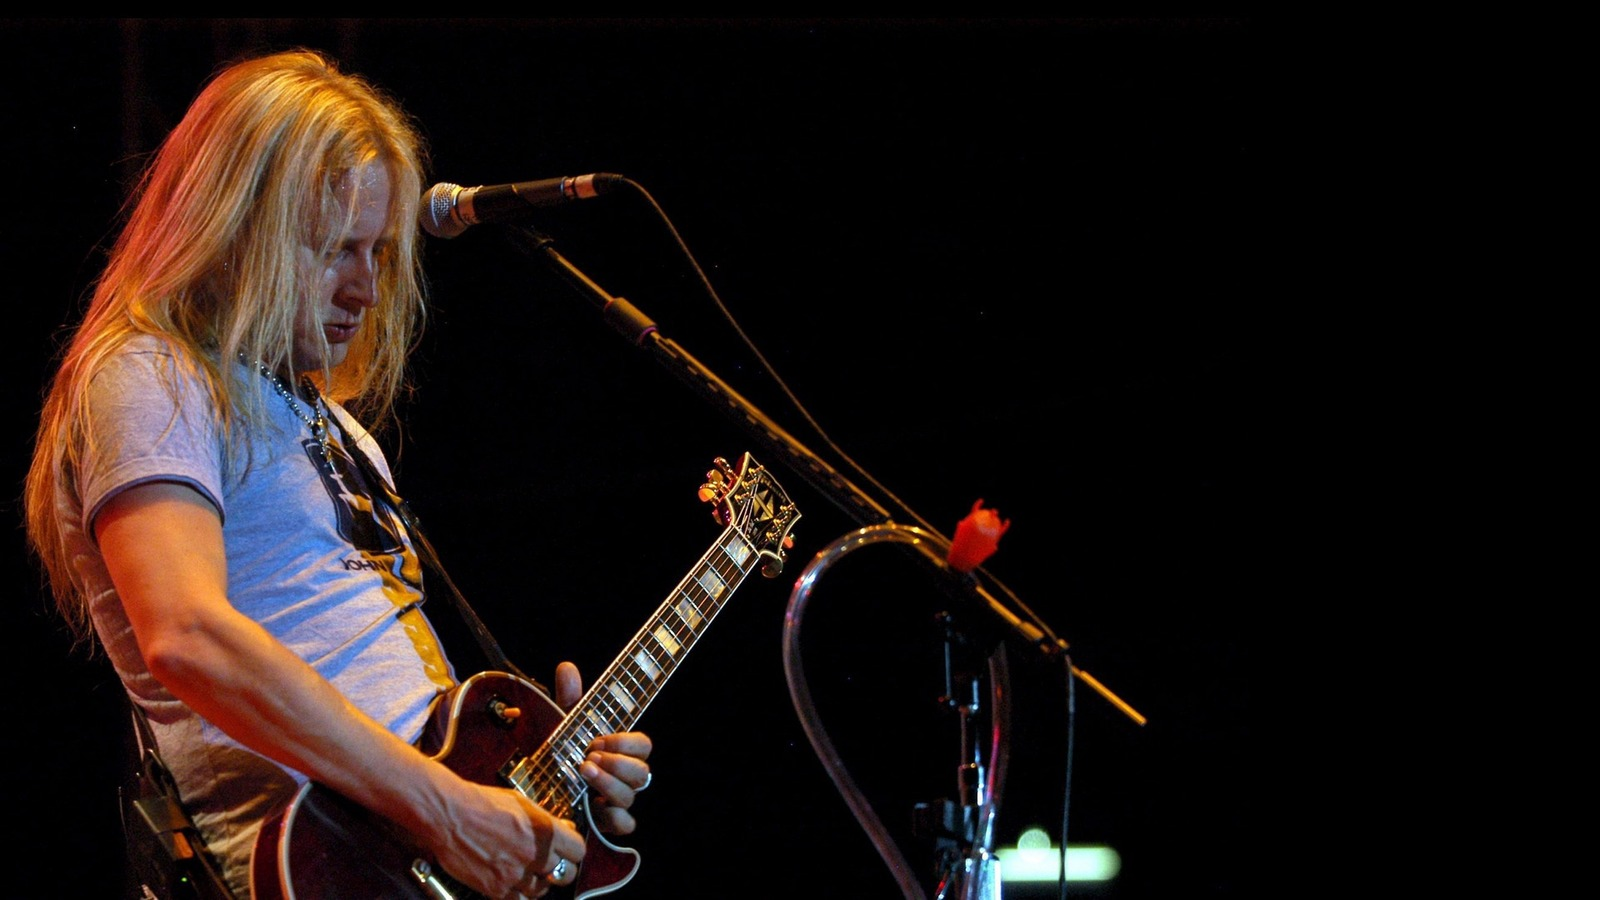 Download wallpaper 1600x900 jerry cantrell guitar microphone 1600x900